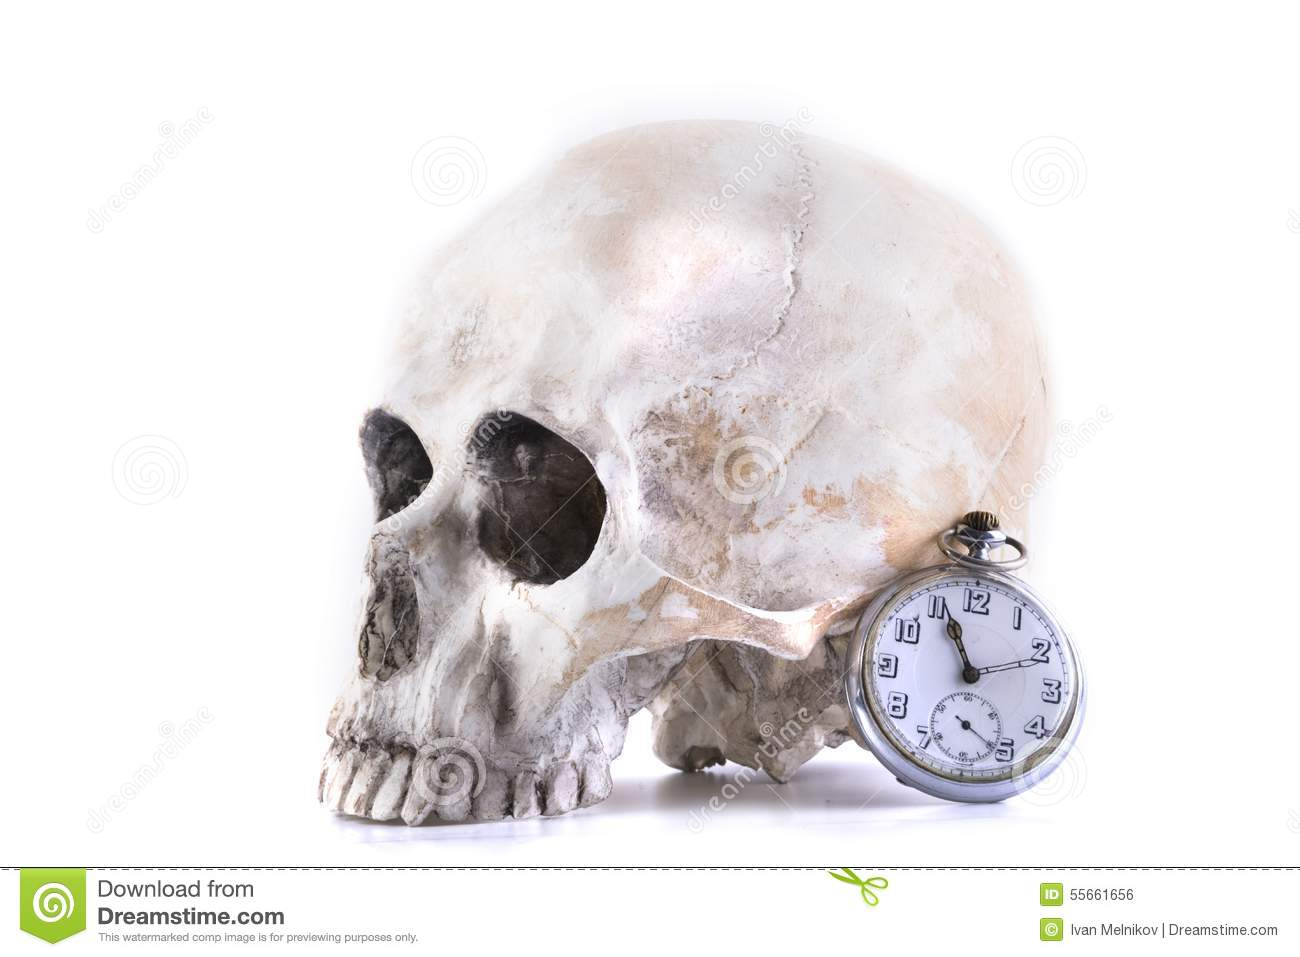 Human skull and watch